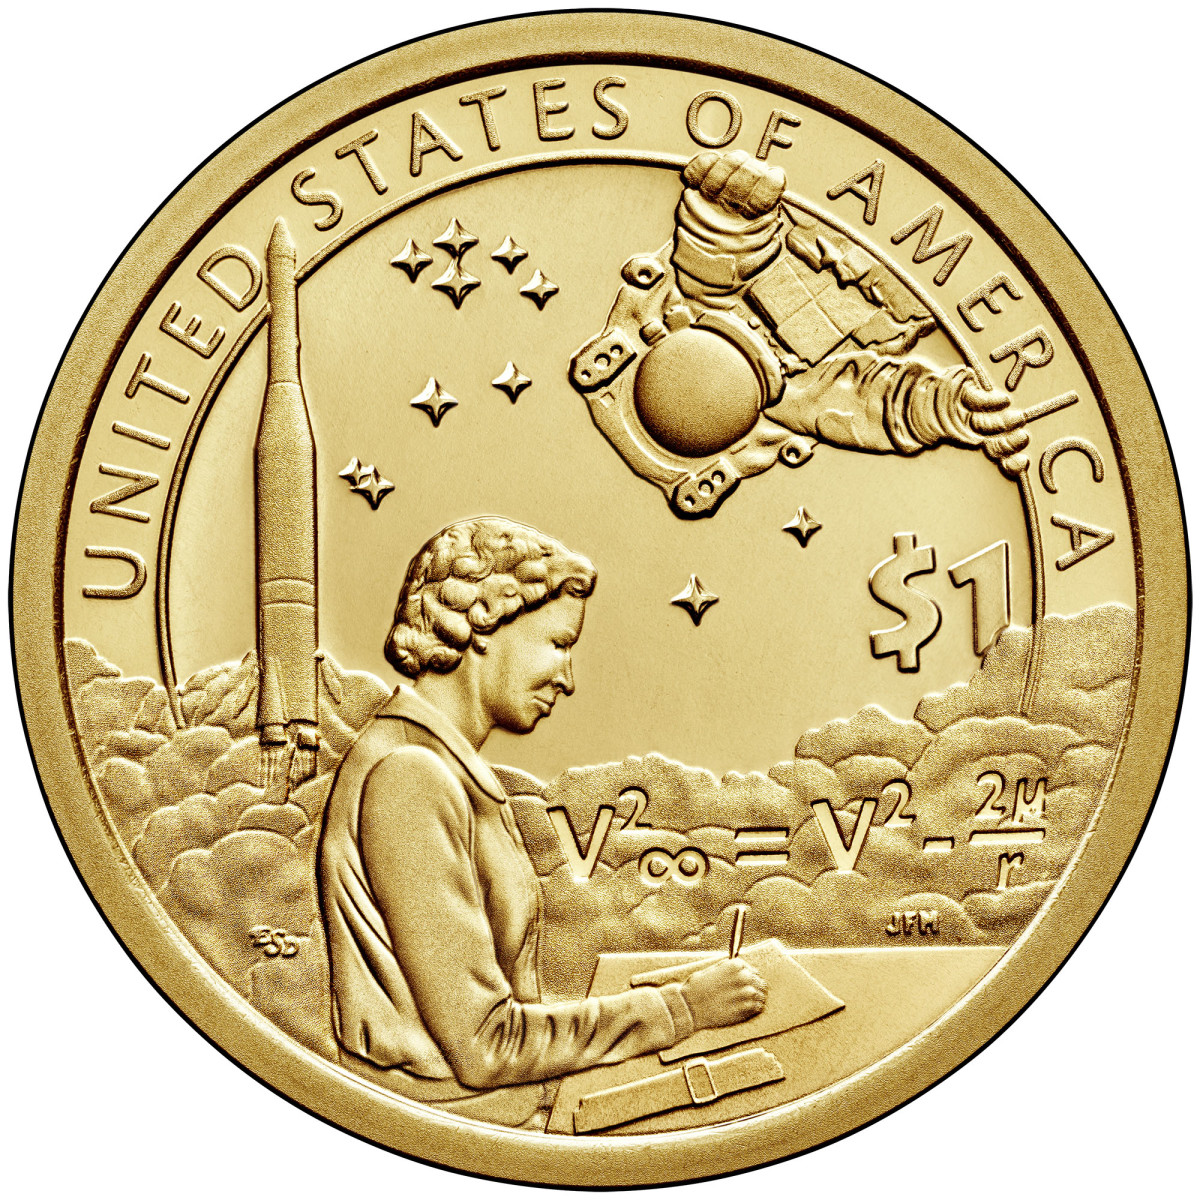 The reverse of the 2019 Native American $1 enhanced uncirculated coin shows Mary Golda Ross and features a background set in Space. (Image courtesy of the U.S. Mint.)